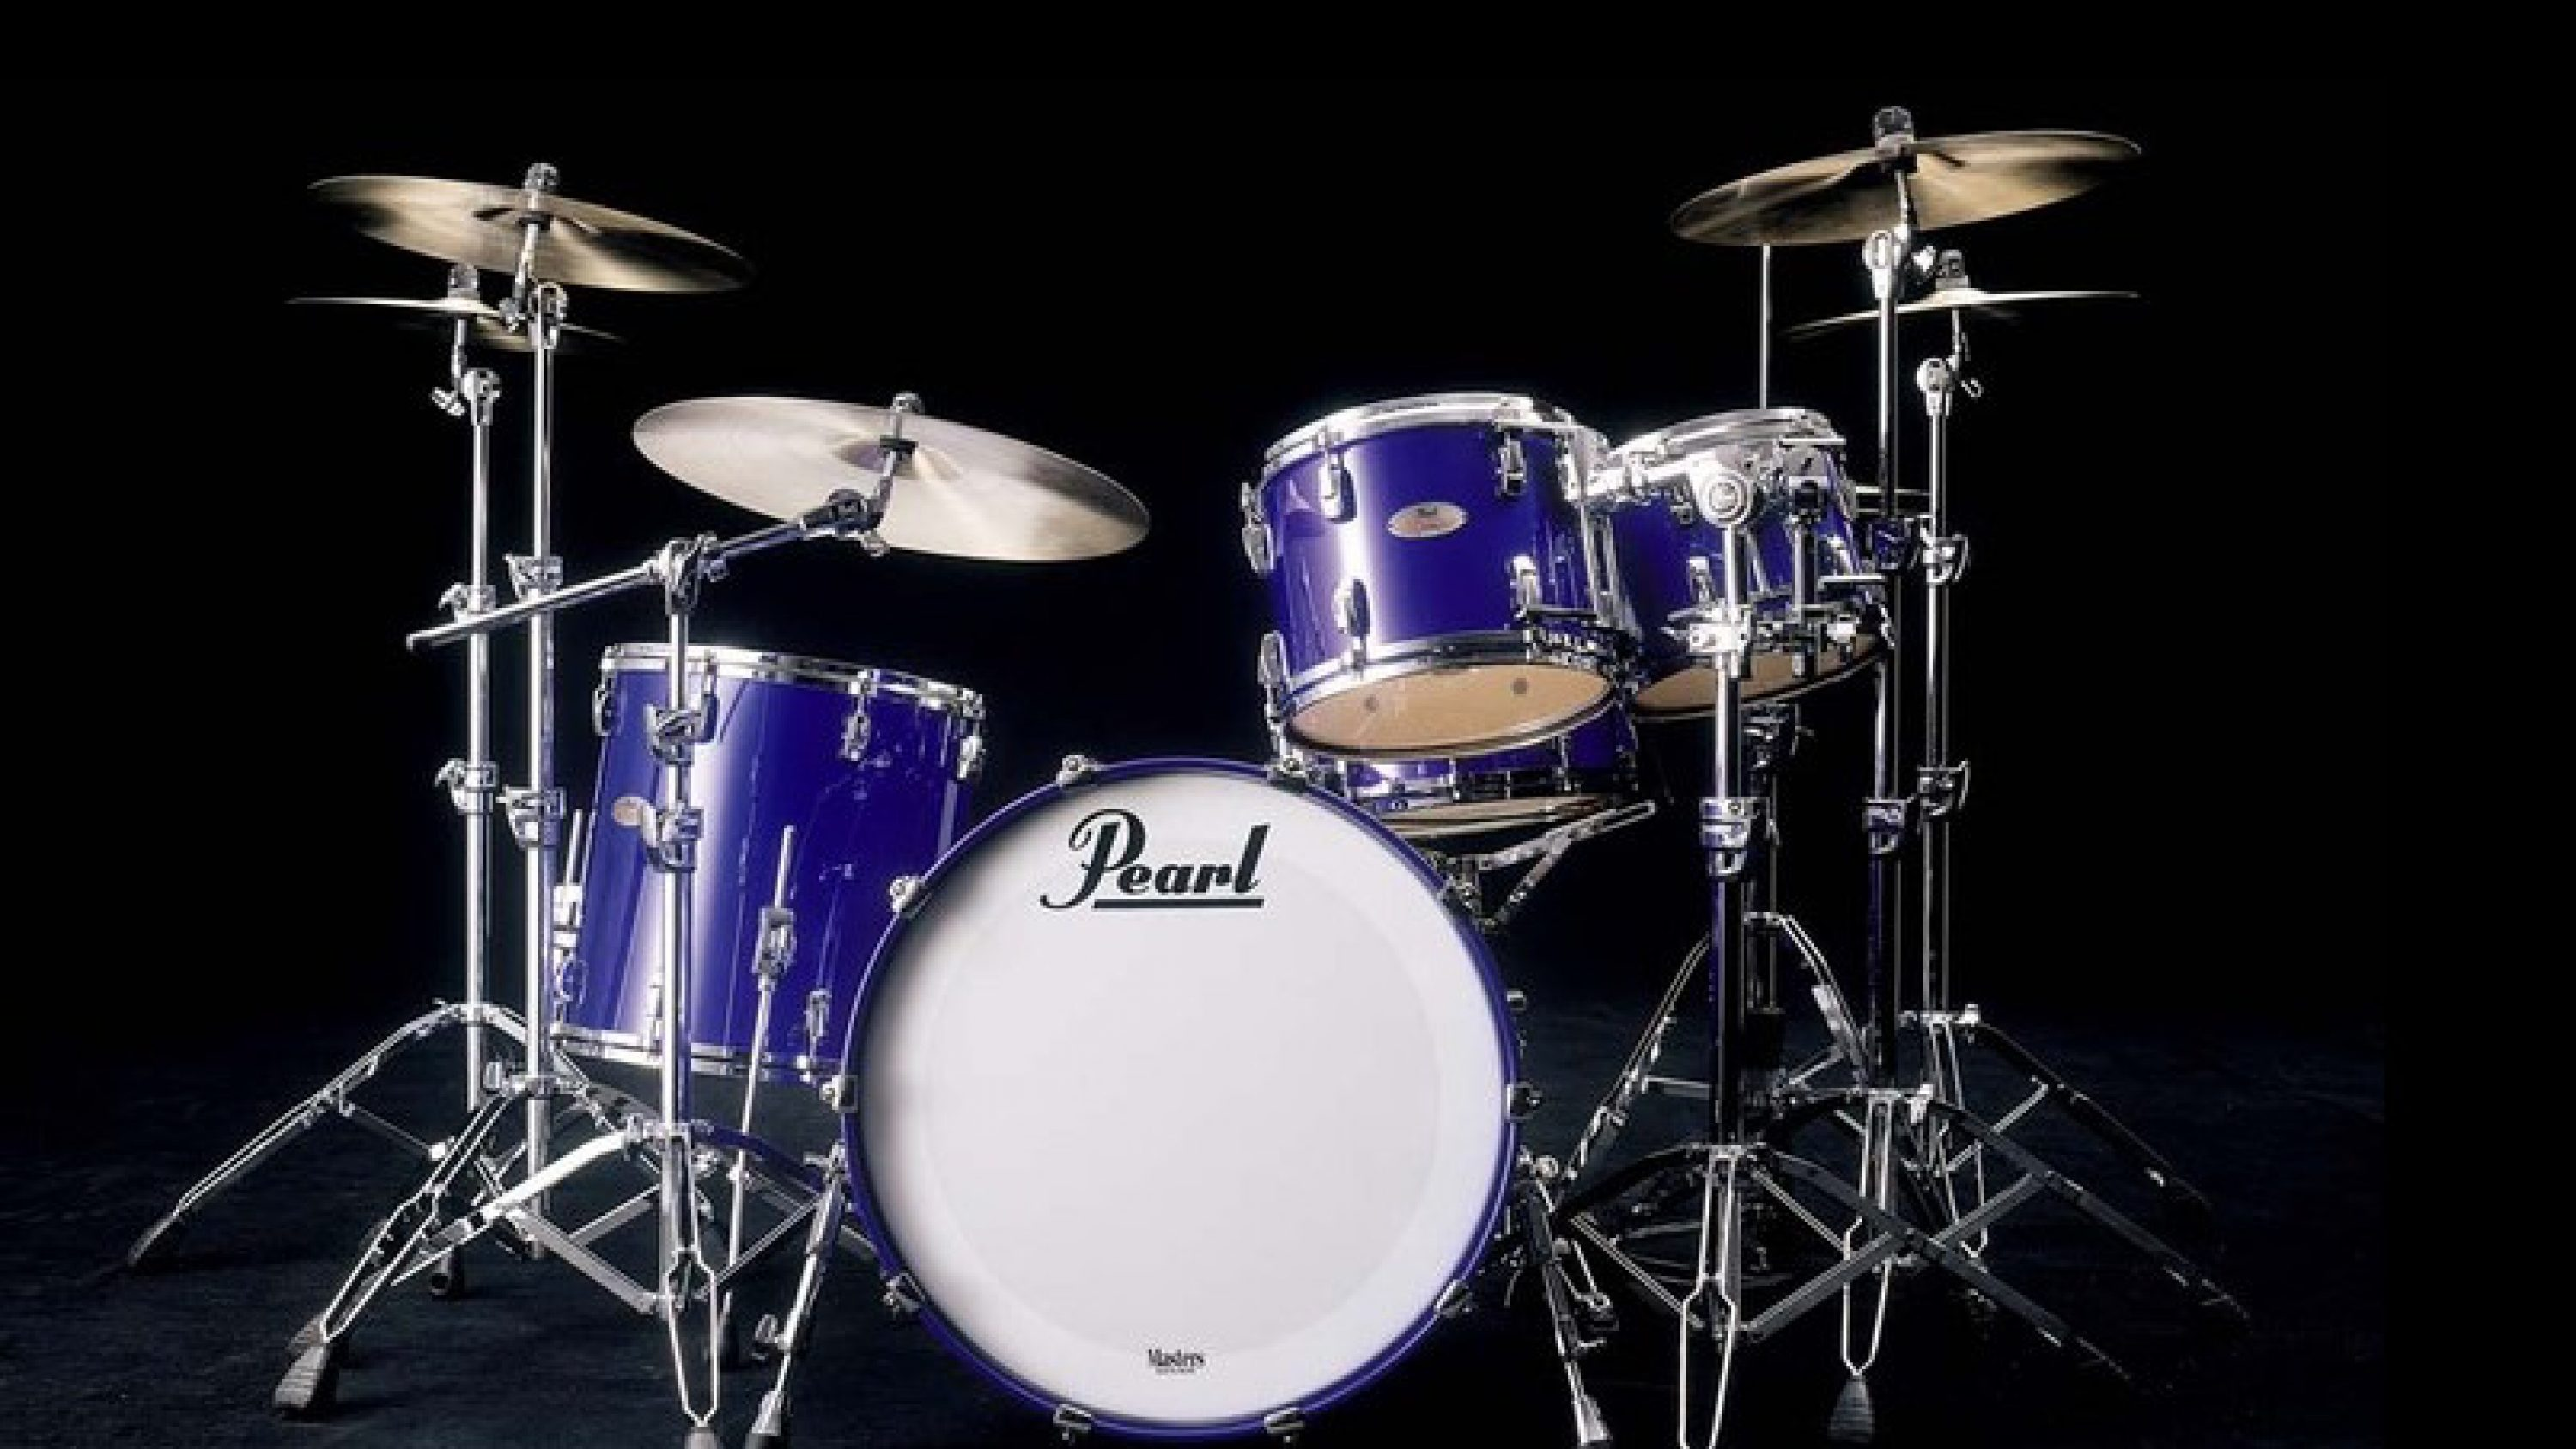 The Top Factors That Impact The Sound of Your Drums